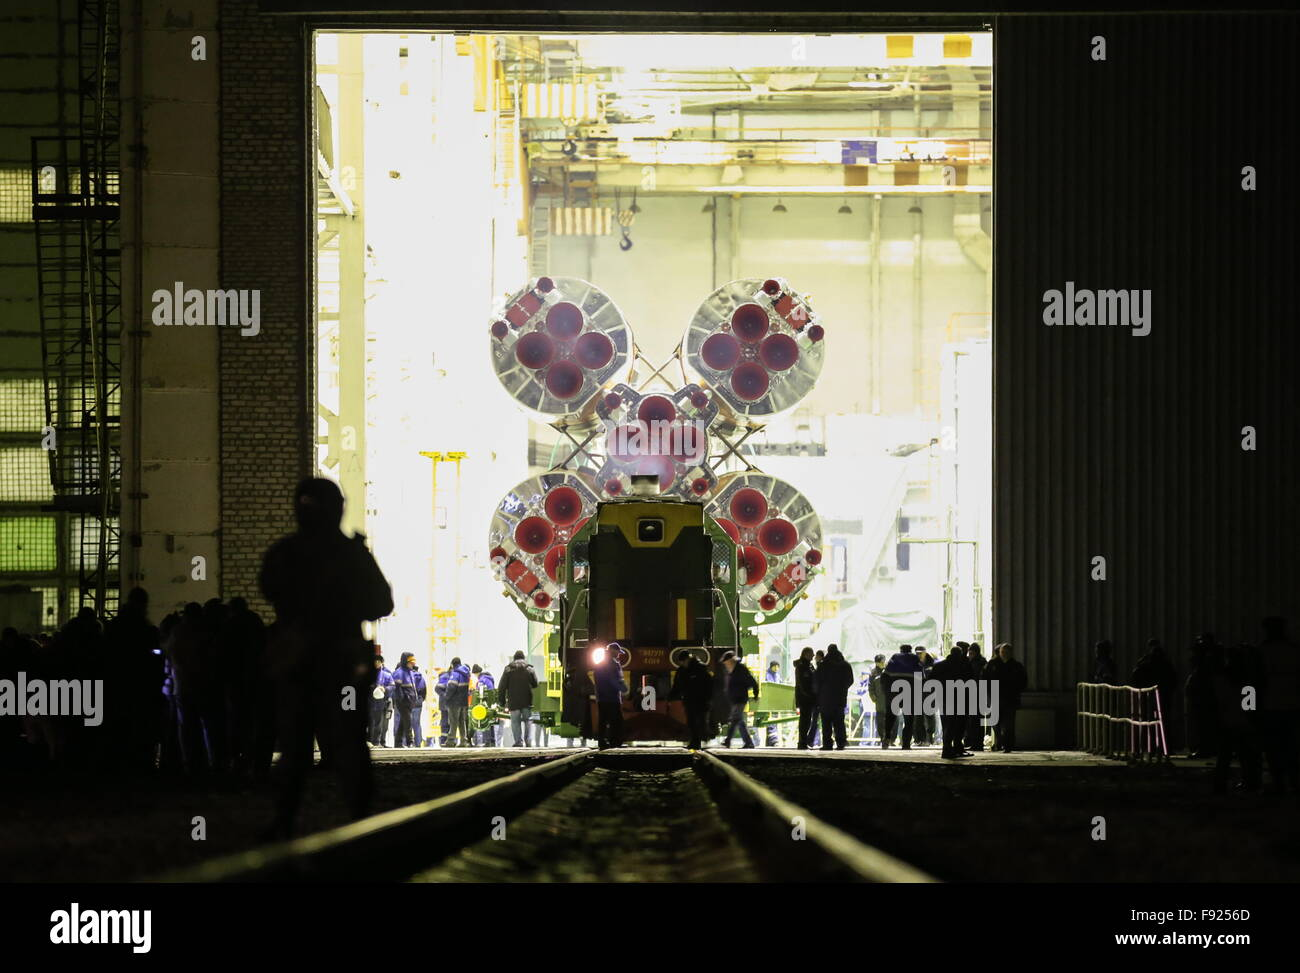 Baikonur, Kazakhstan. 13th Dec, 2015. A Soyuz FG rocket booster with the Soyuz TMA-19M spacecraft being transported - Stock Image